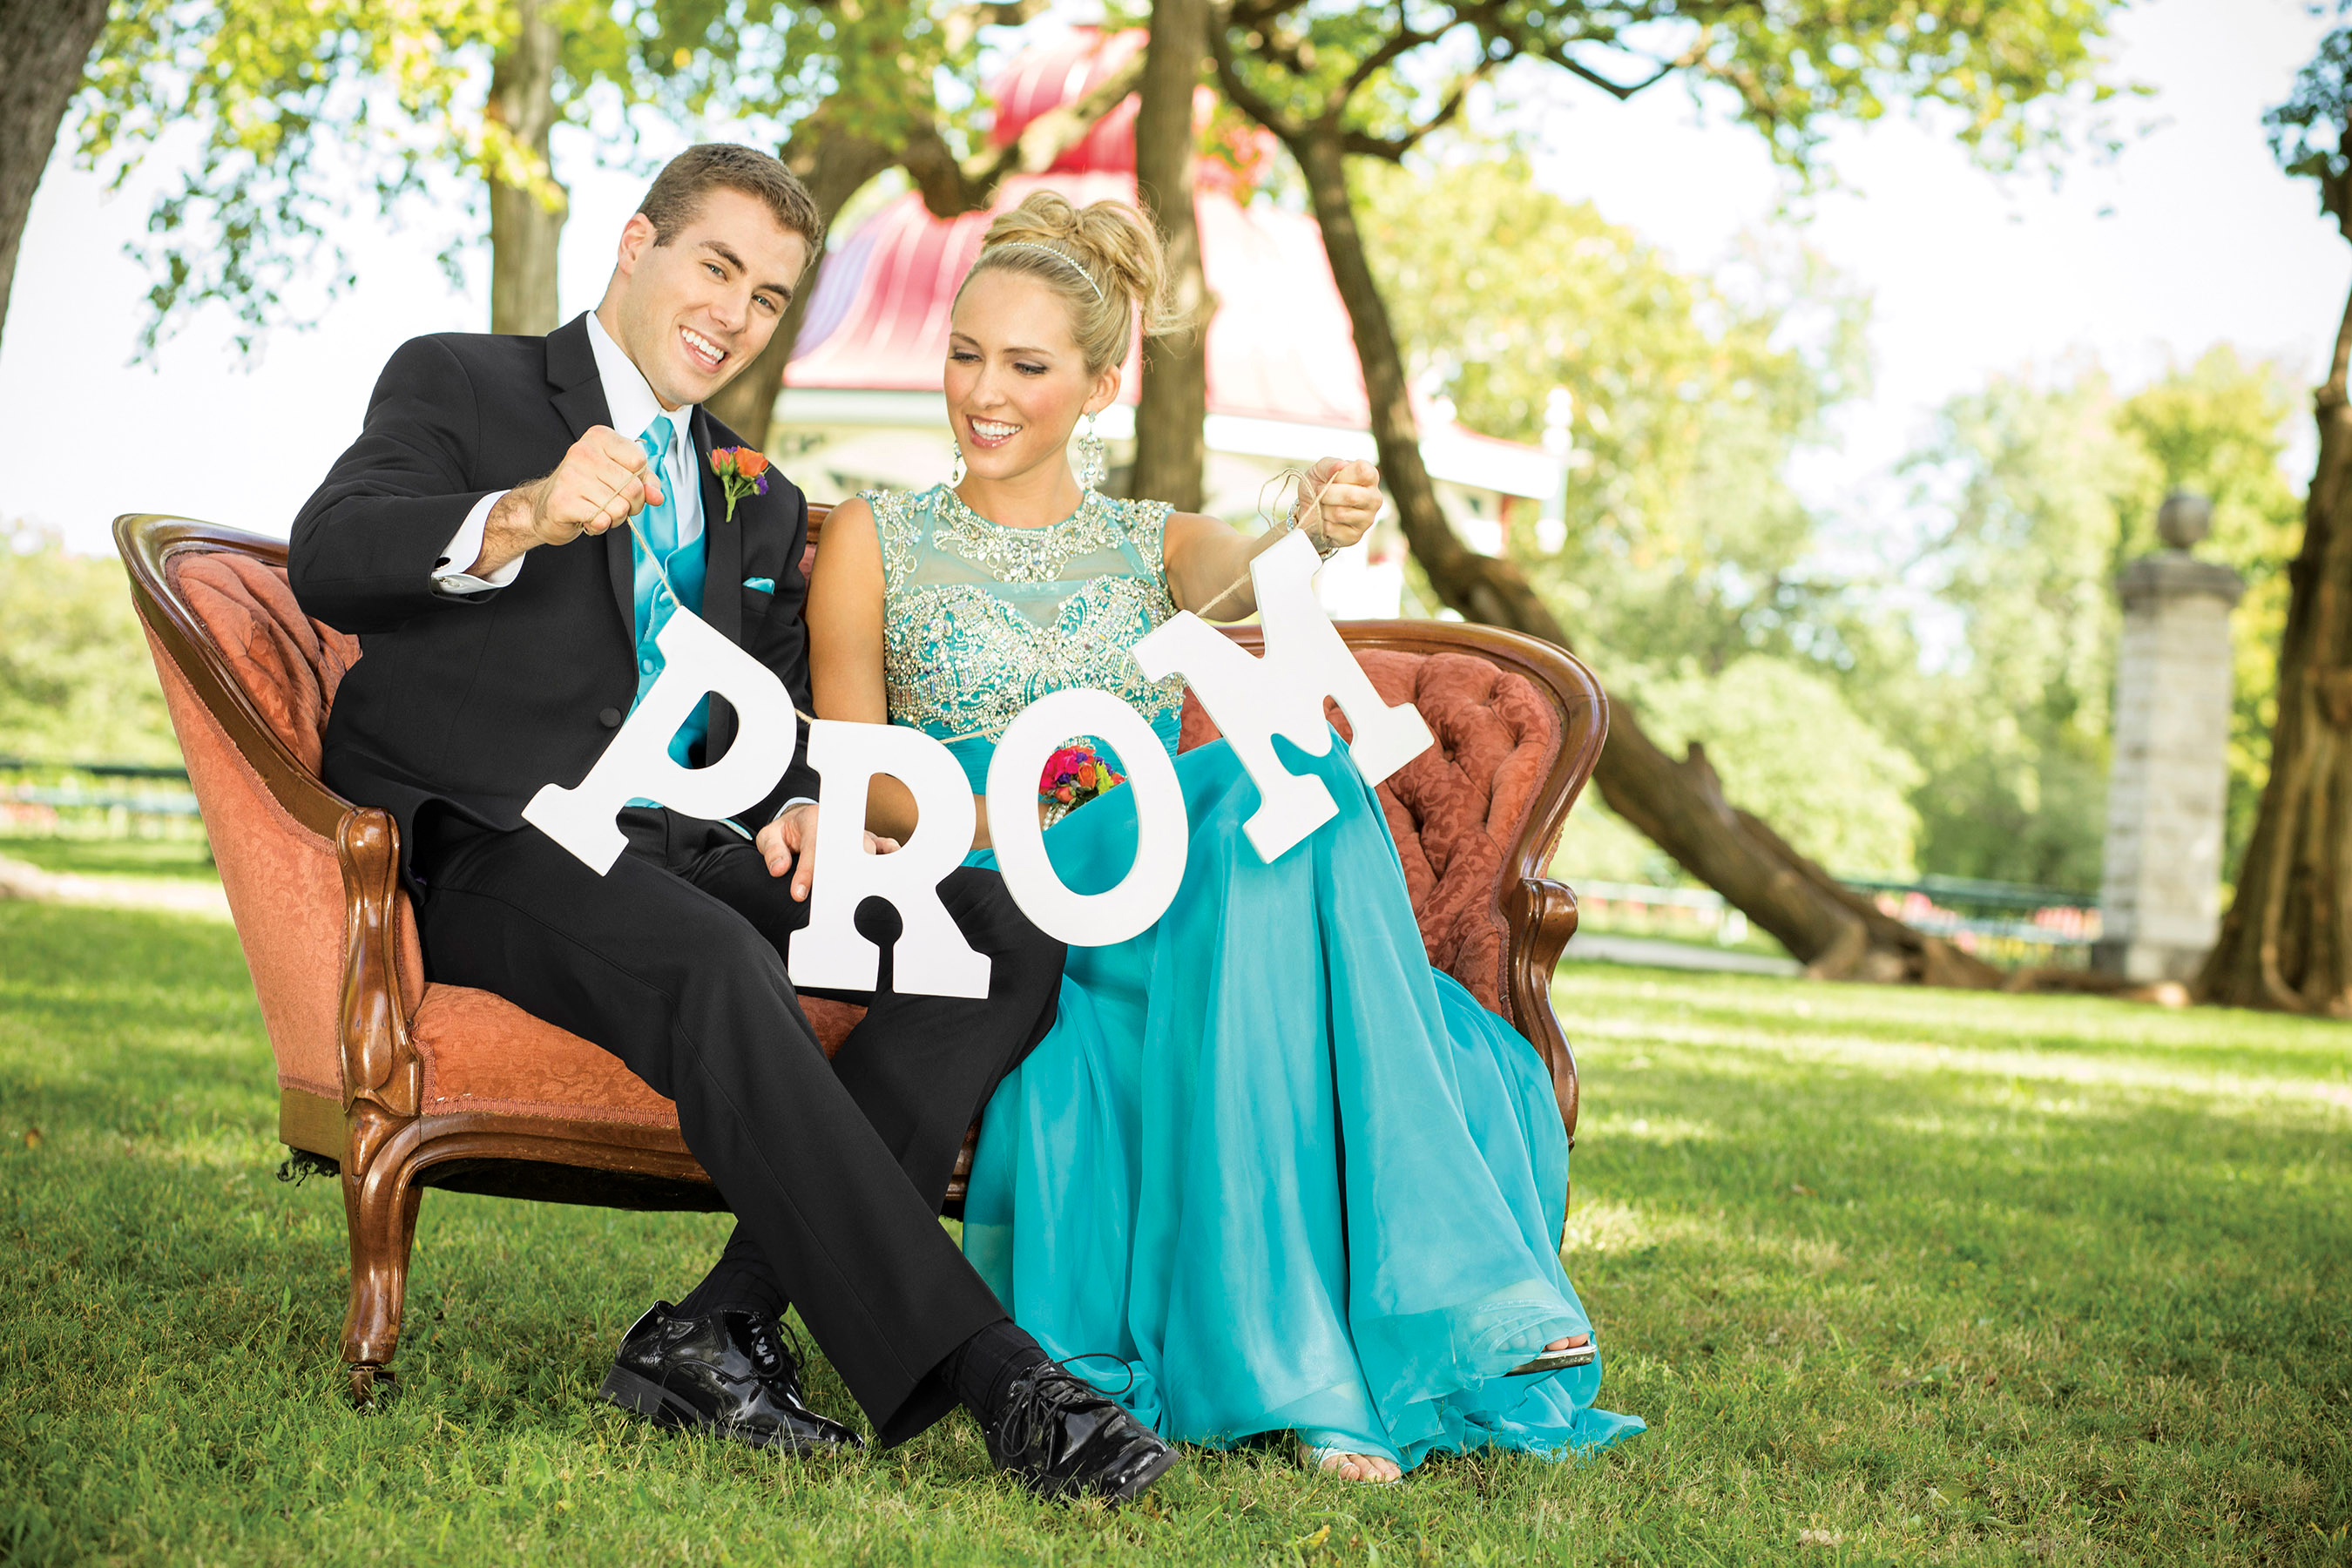 JFW_prom couple_sign.jpg